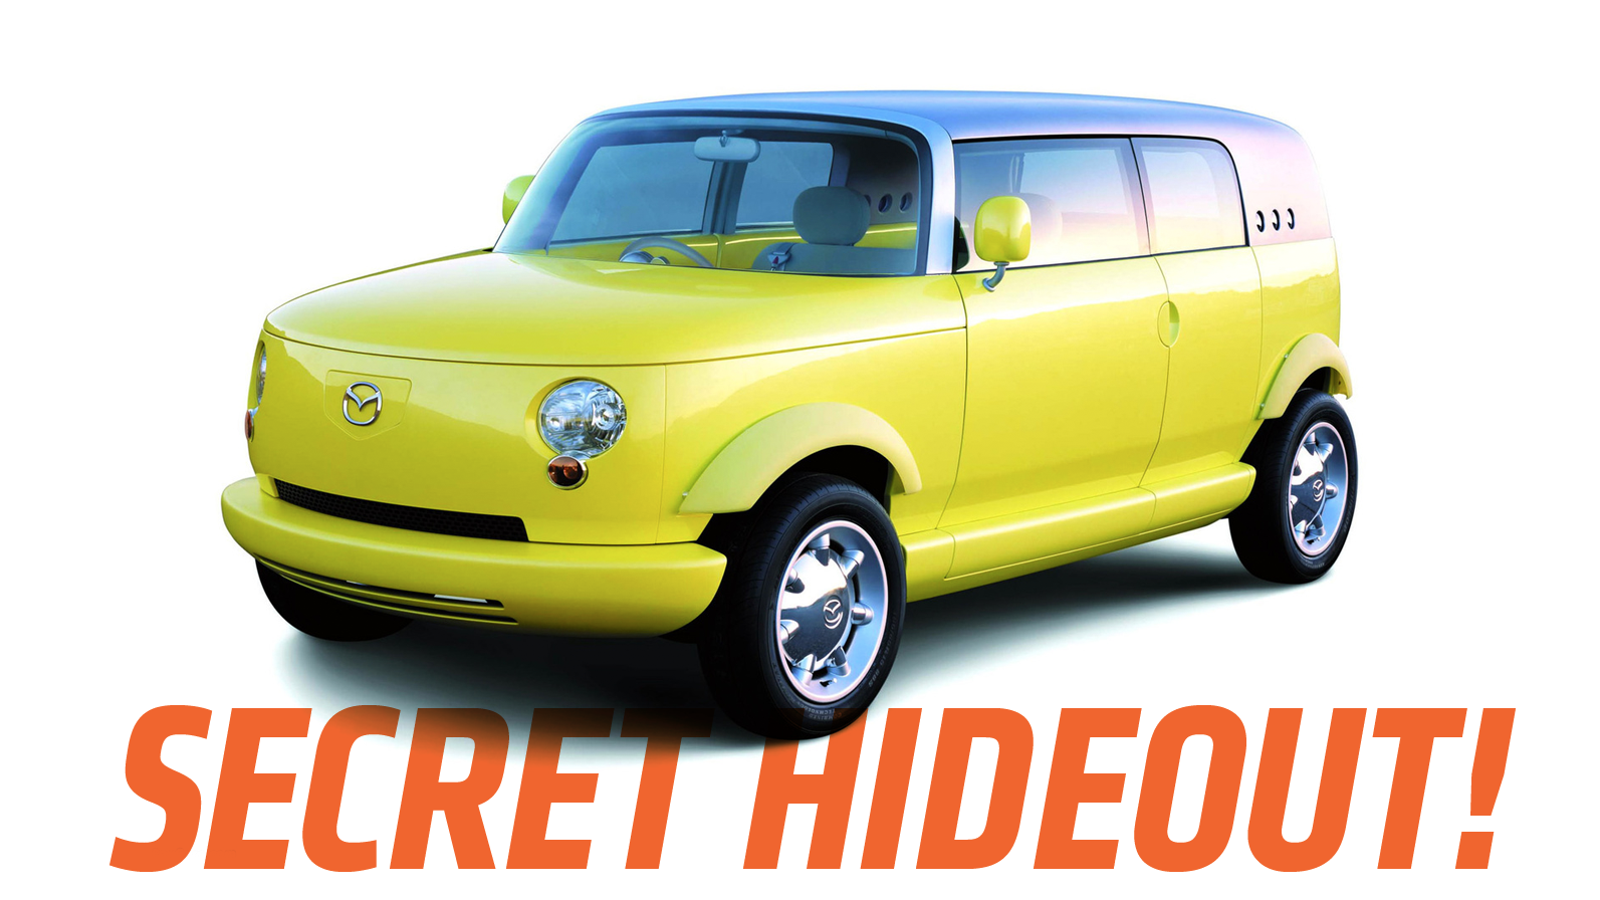 Mazda Once Built a Concept Car Called Secret Hideout